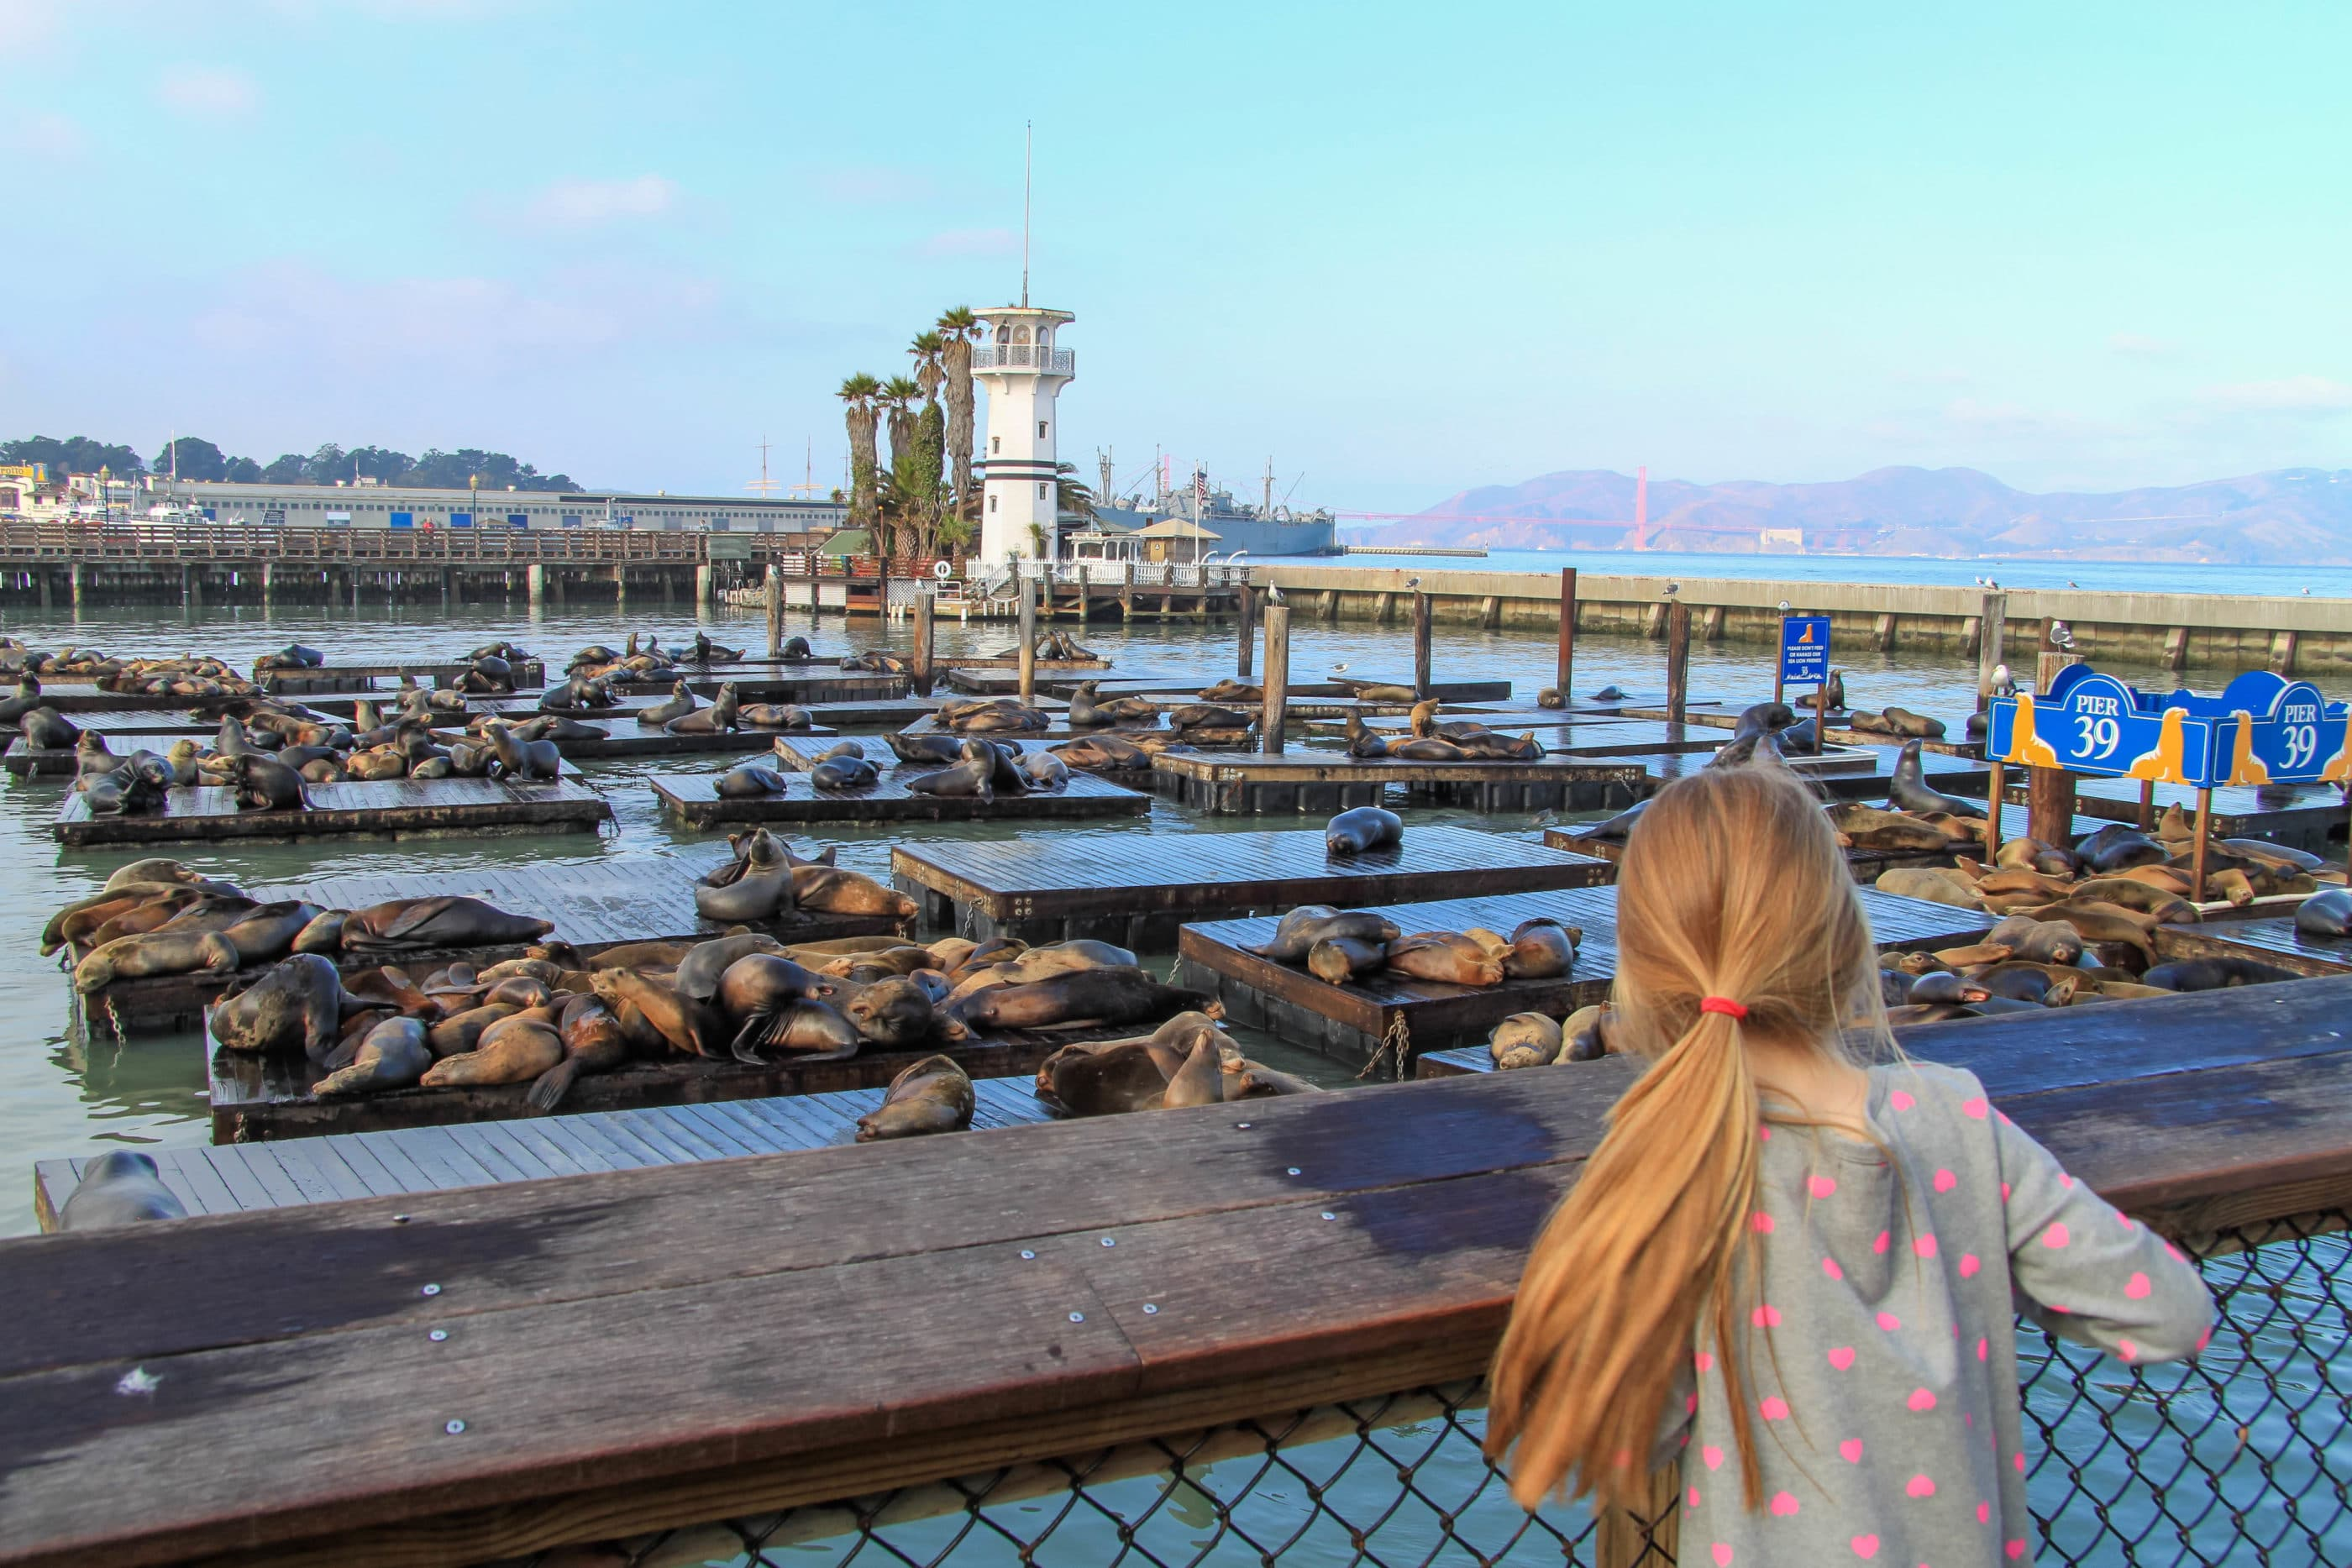 My daughter admiring the lounging Pier 39 sea lions